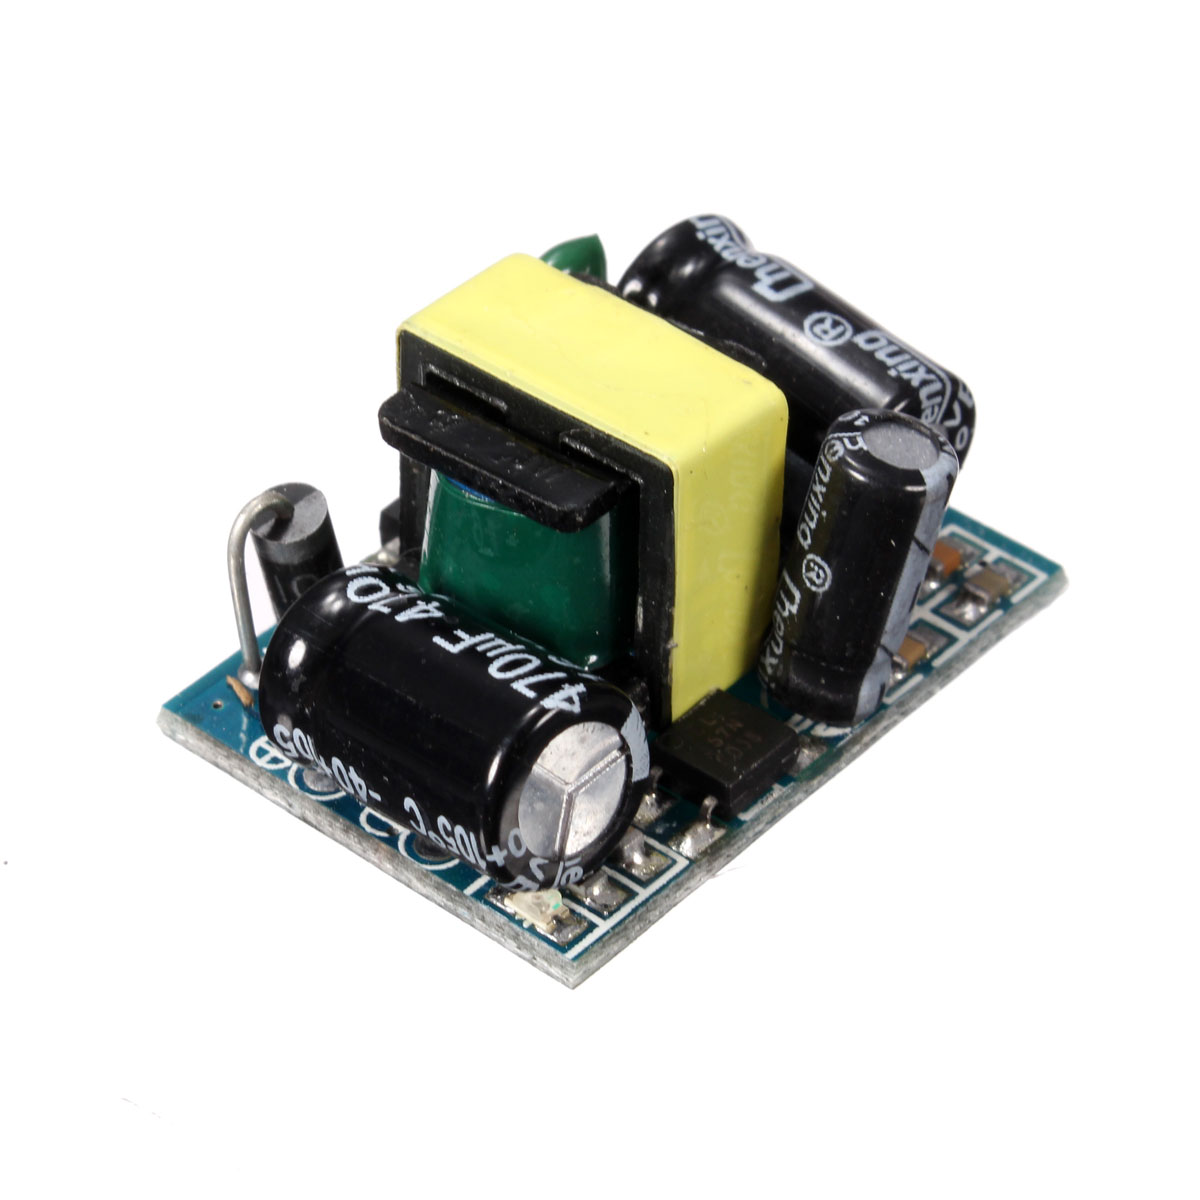 Ac Dc 12v 450ma 5w Power Supply Buck Converter Step Down Module To Circuit Diagram Ane Absolute Native Electronics